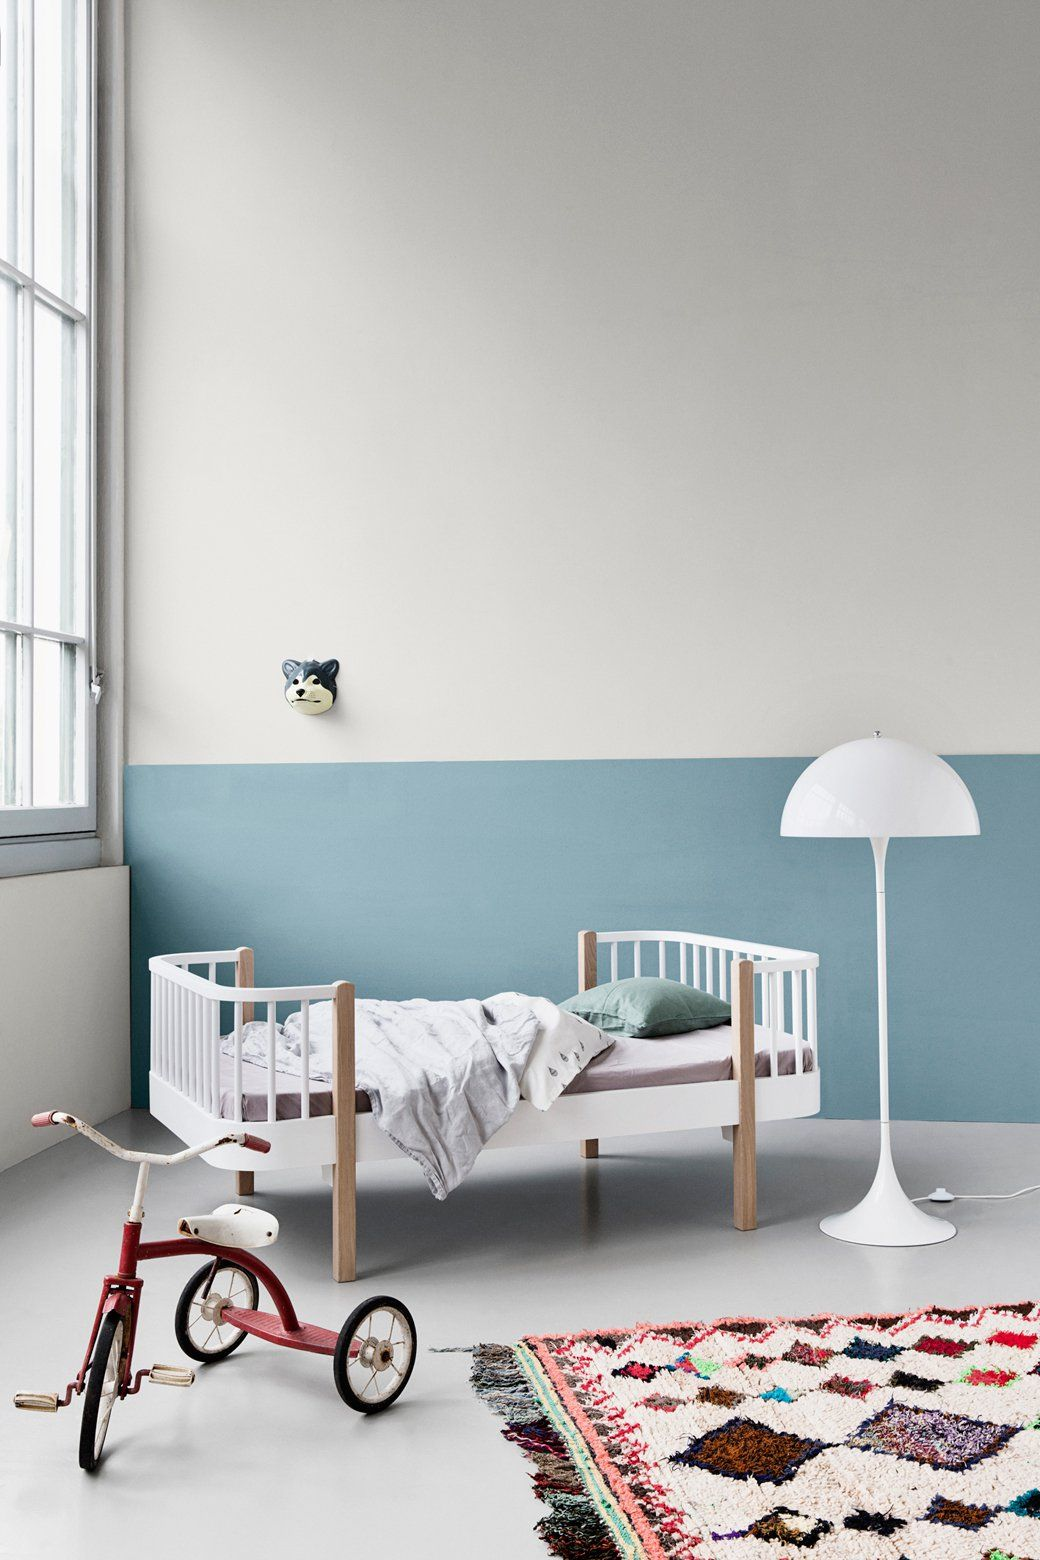 Transitioning From Crib To Toddler Bed Kids Bedroom - Kinderzimmermöbel Baby